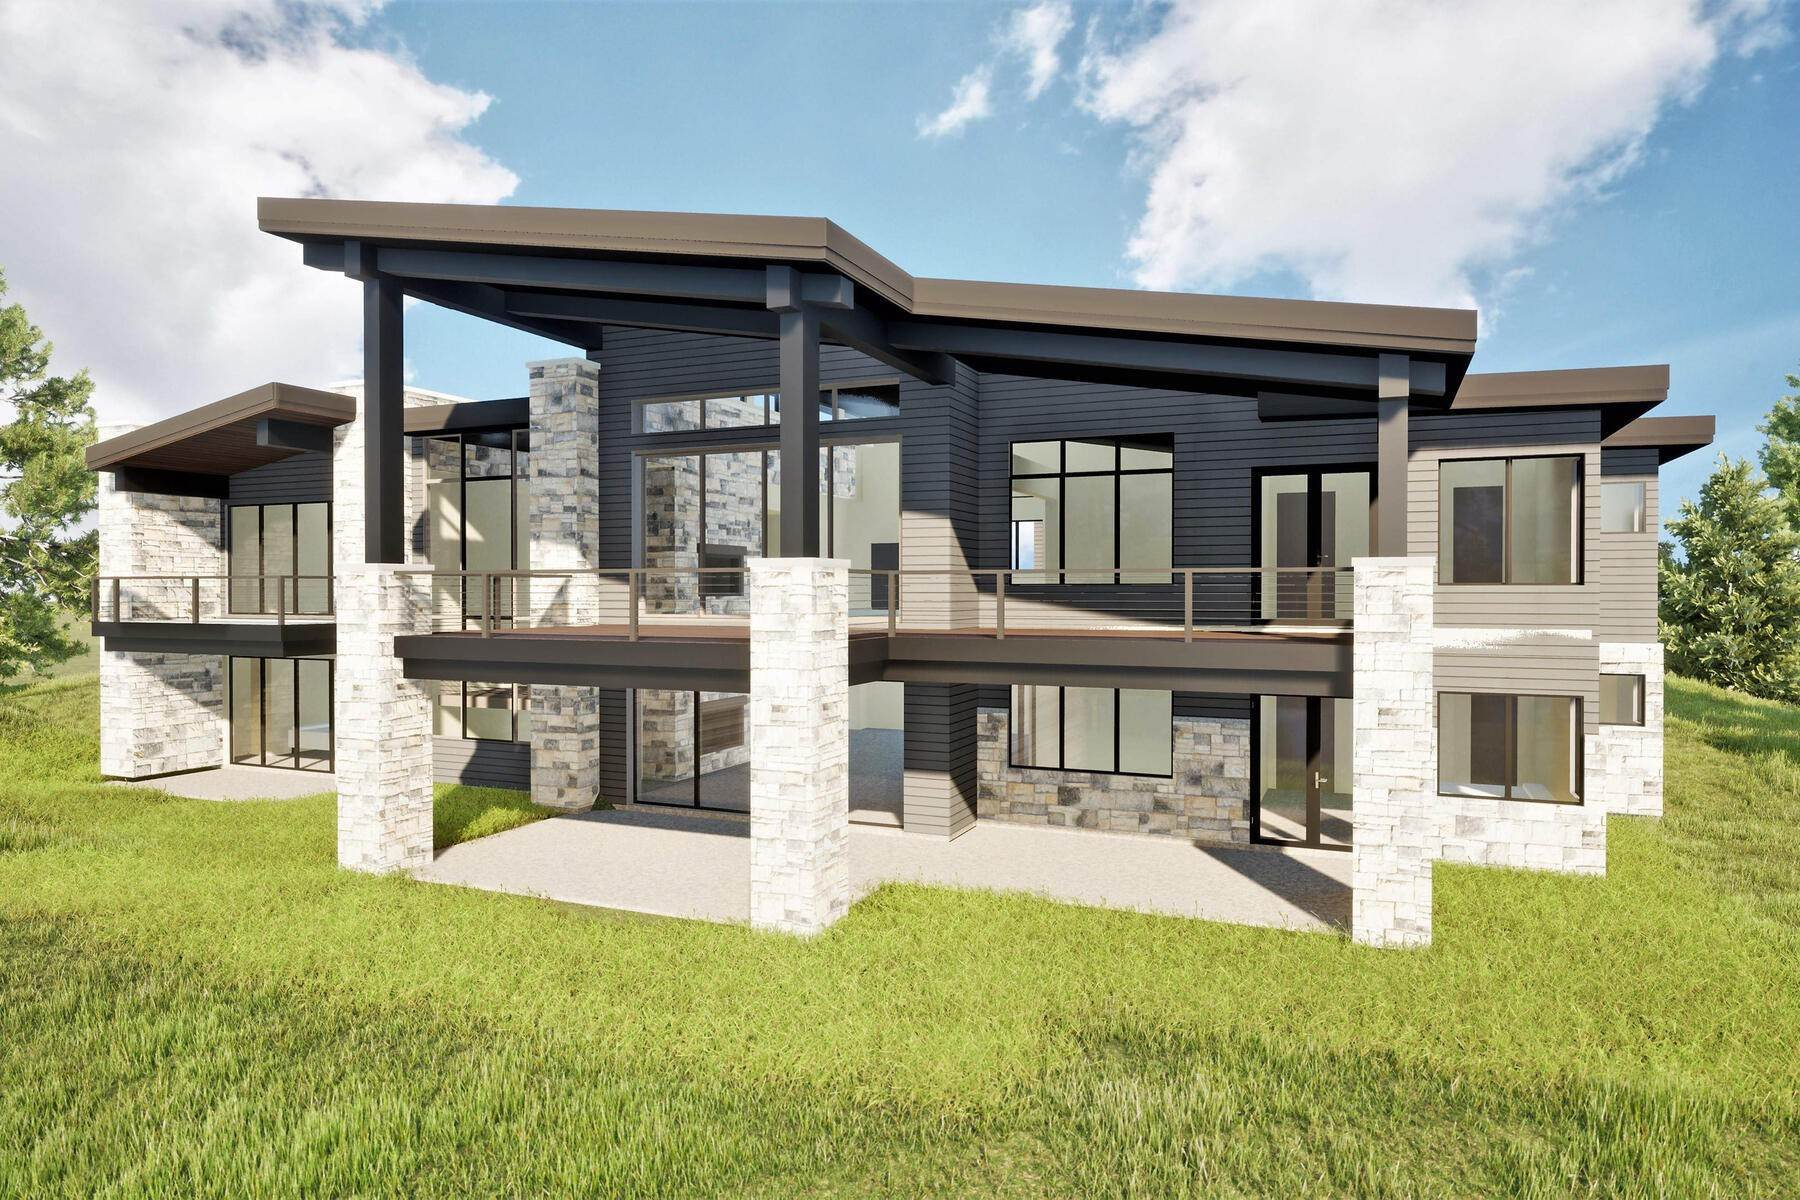 Single Family Homes for Sale at Breathtaking Home with Outstanding Lake Views 3795 E Rockport Ridge Road Park City, Utah 84098 United States